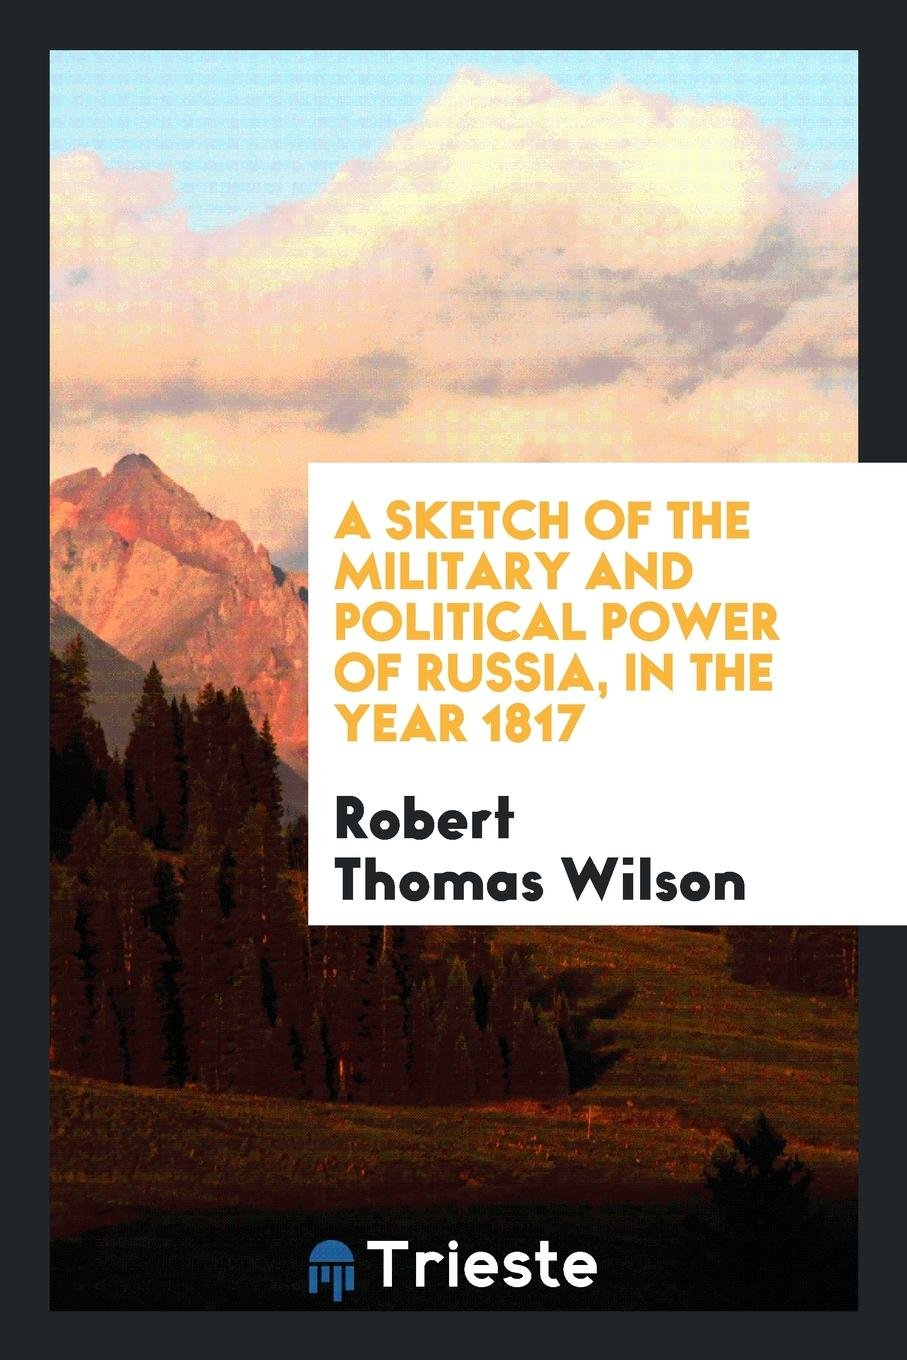 A Sketch of the Military and Political Power of Russia, in the Year 1817 PDF